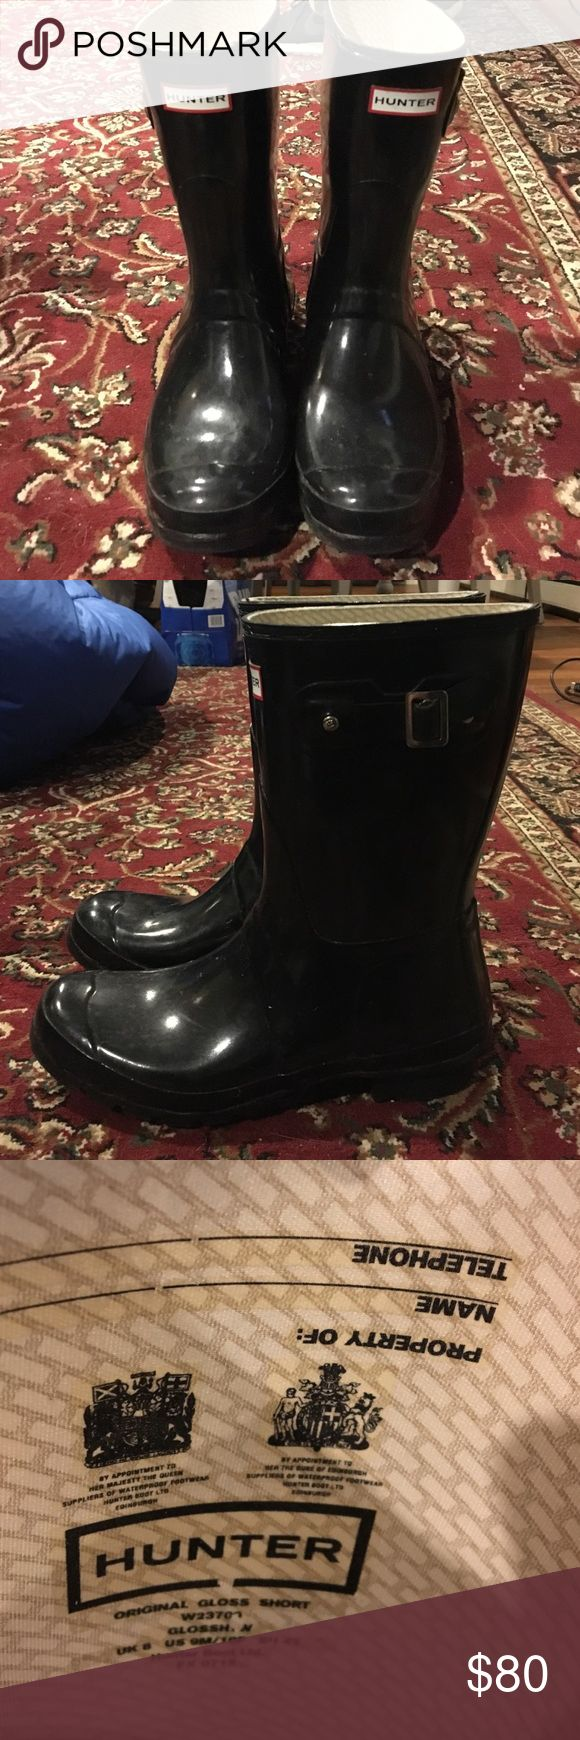 Black size 10 women's short hunter rain boots Only worn a few times. Great condition! Hunter Boots Shoes Winter & Rain Boots